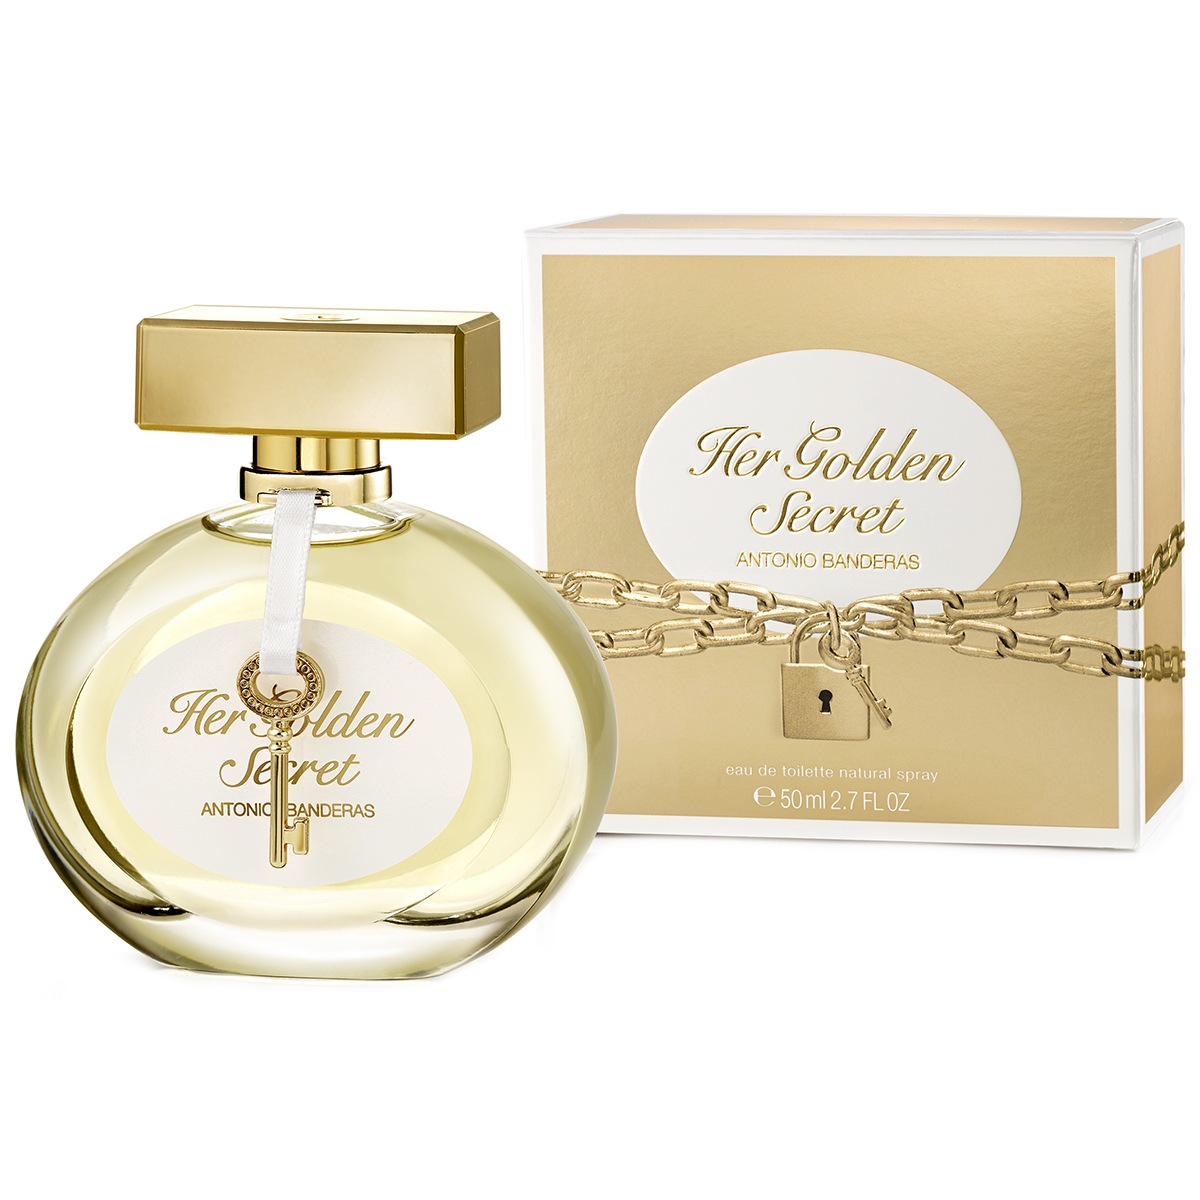 Apa de Toaleta Antonio Banderas Her Golden Secret